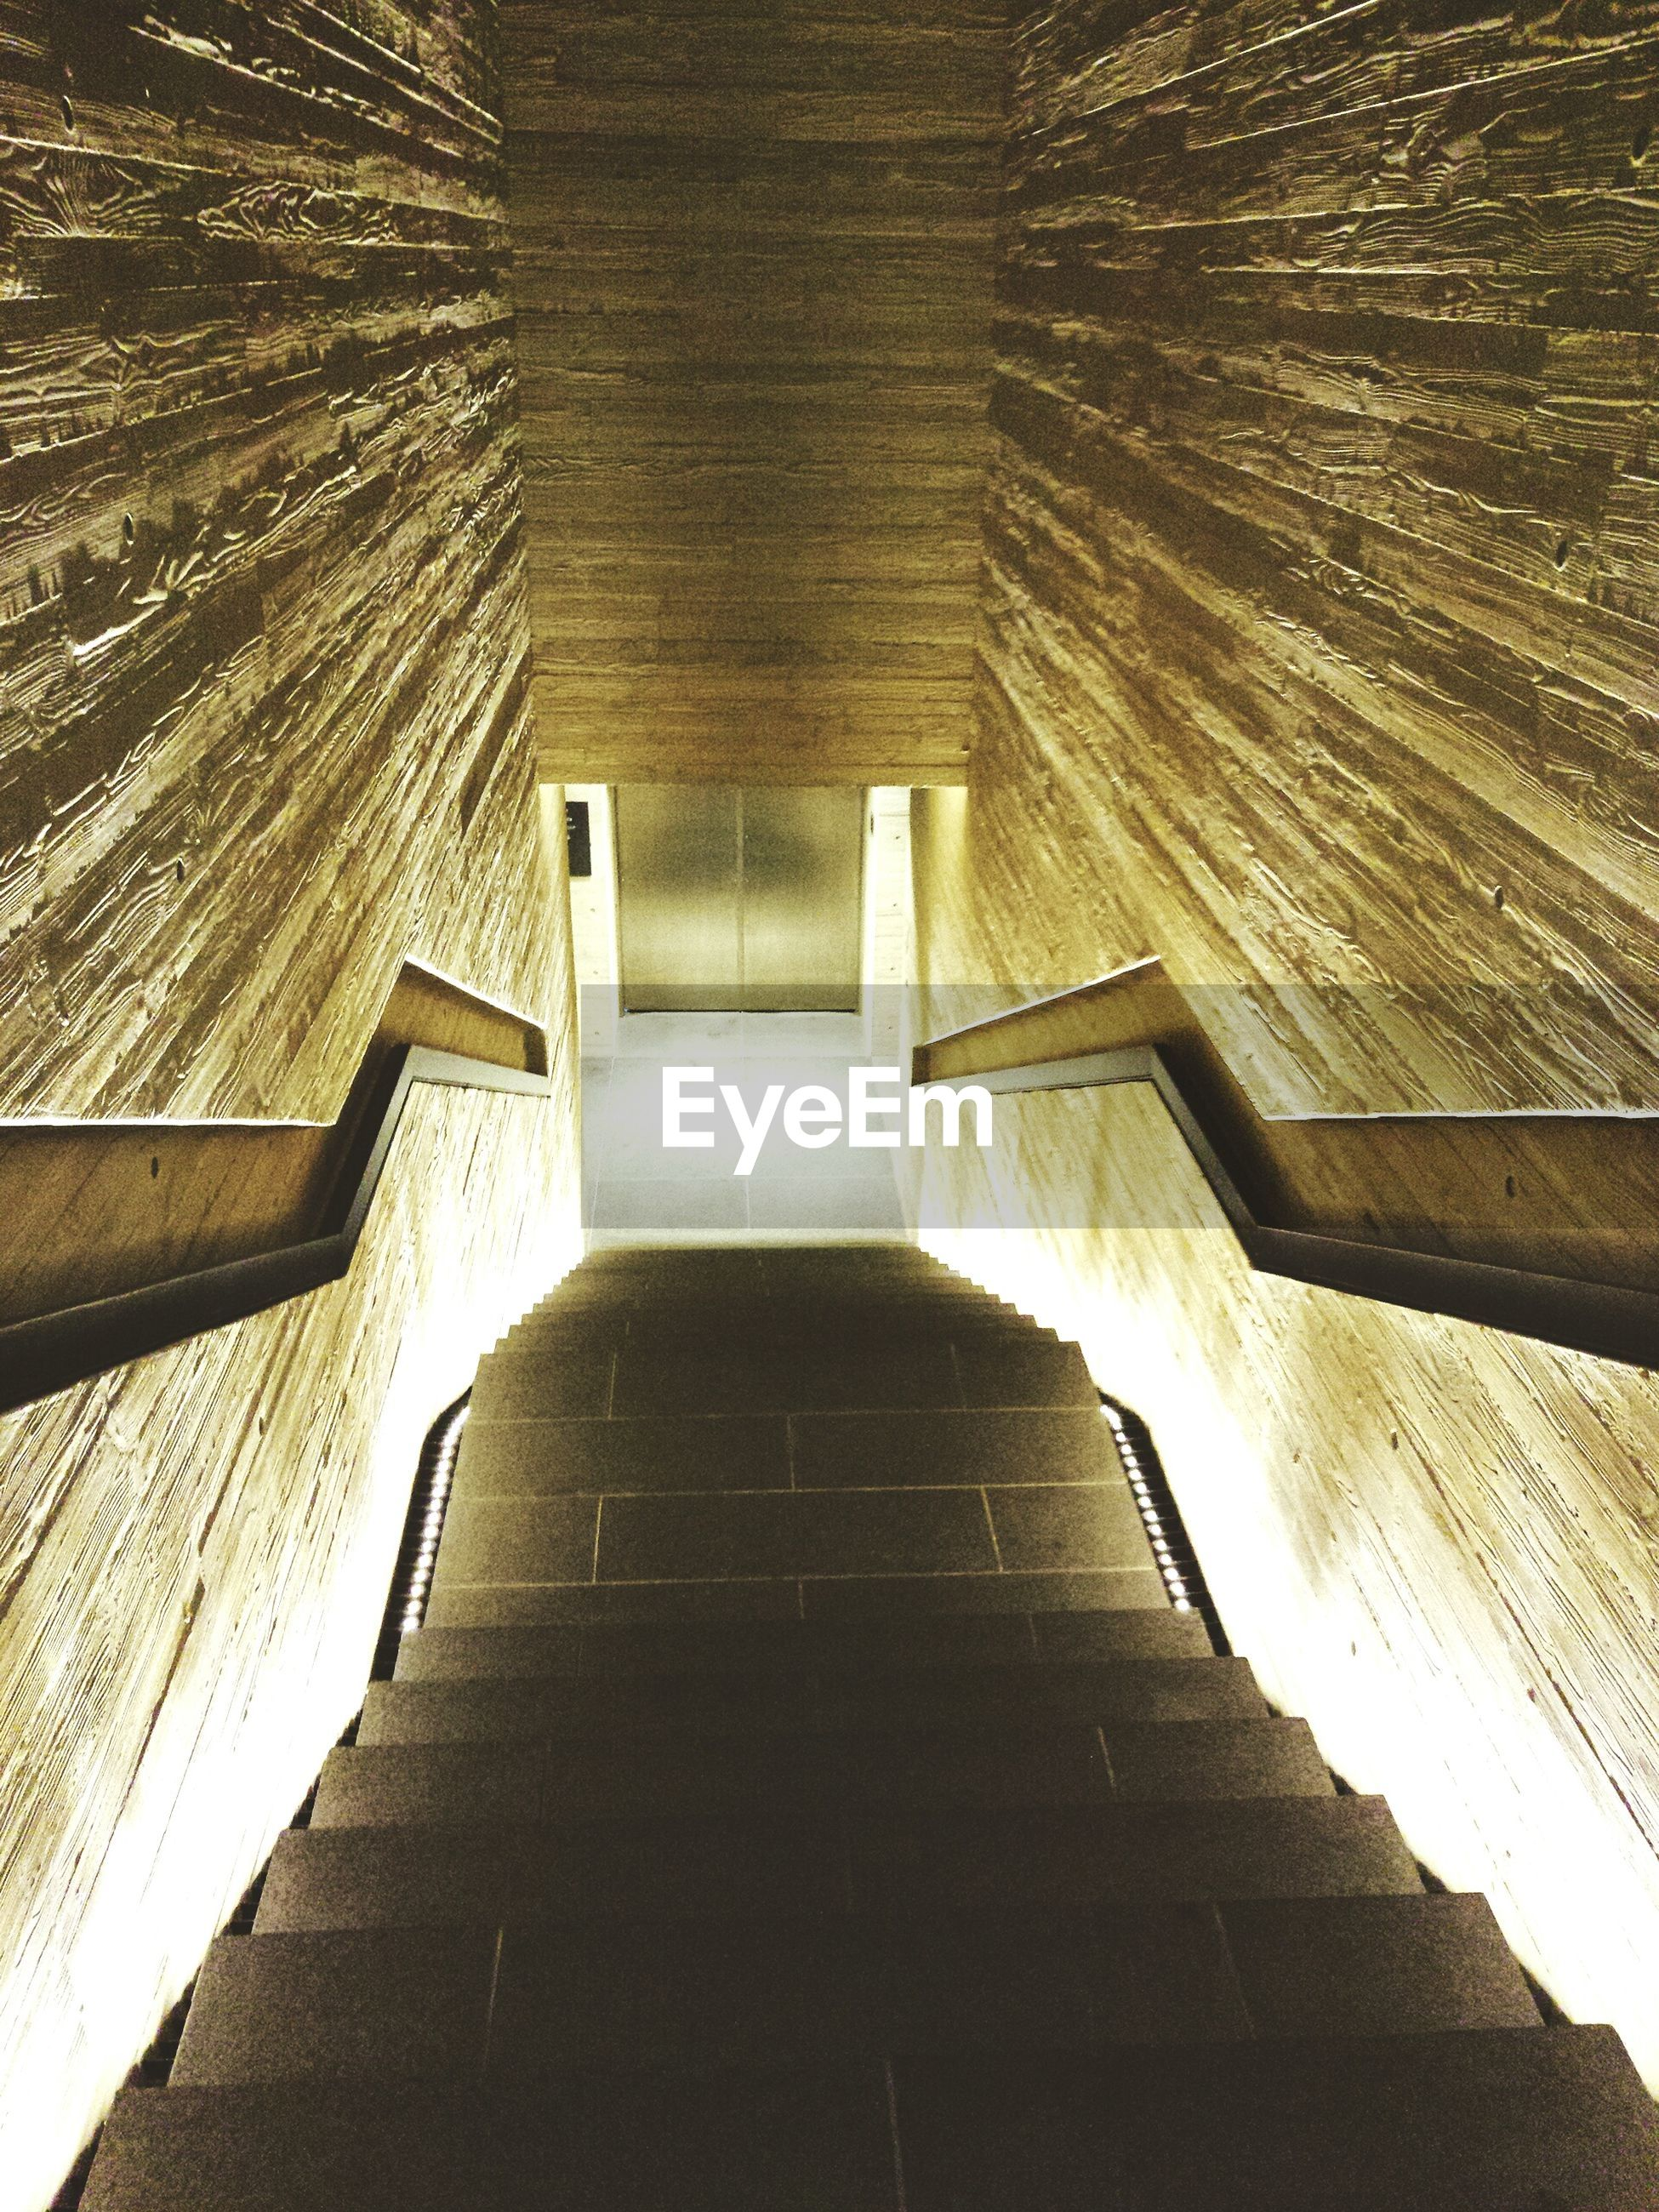 architecture, built structure, the way forward, steps, building exterior, steps and staircases, staircase, diminishing perspective, building, narrow, railing, low angle view, wall - building feature, walkway, sunlight, shadow, no people, leading, vanishing point, indoors